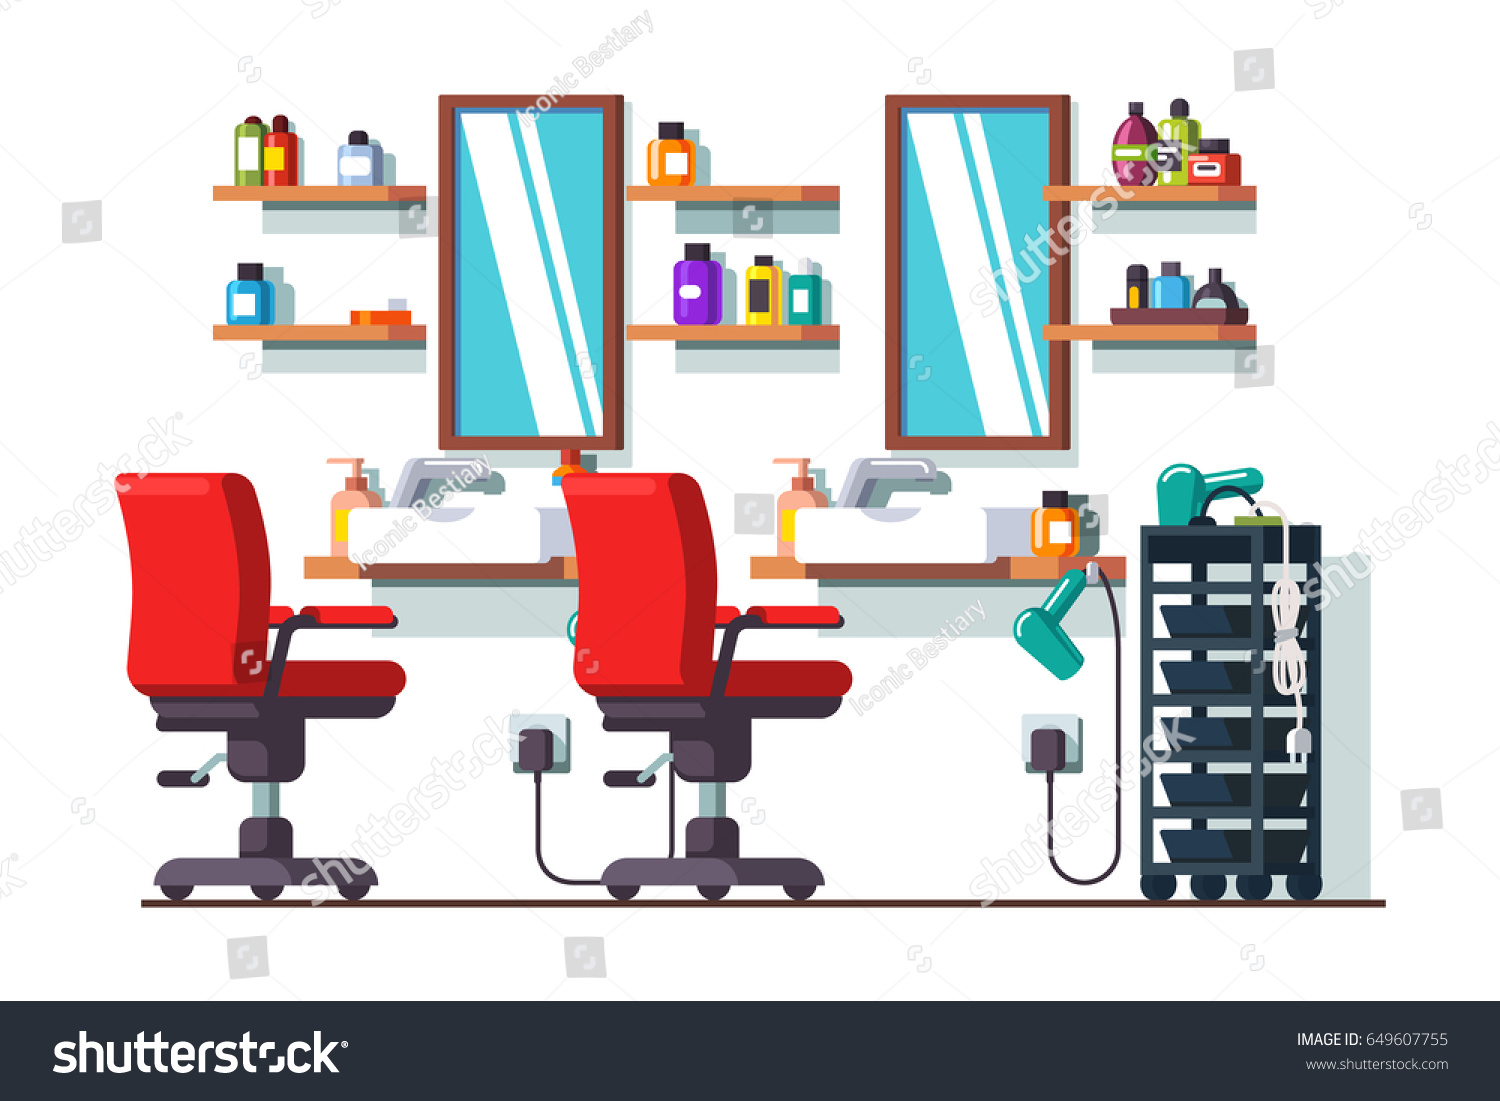 Hair salon chair isolated stock photos illustrations and vector art -  Vectors Illustrations Footage Music Woman Beauty Hairdressing Salon Interior Design With Chairs Mirrors Shelves And Sinks Barber